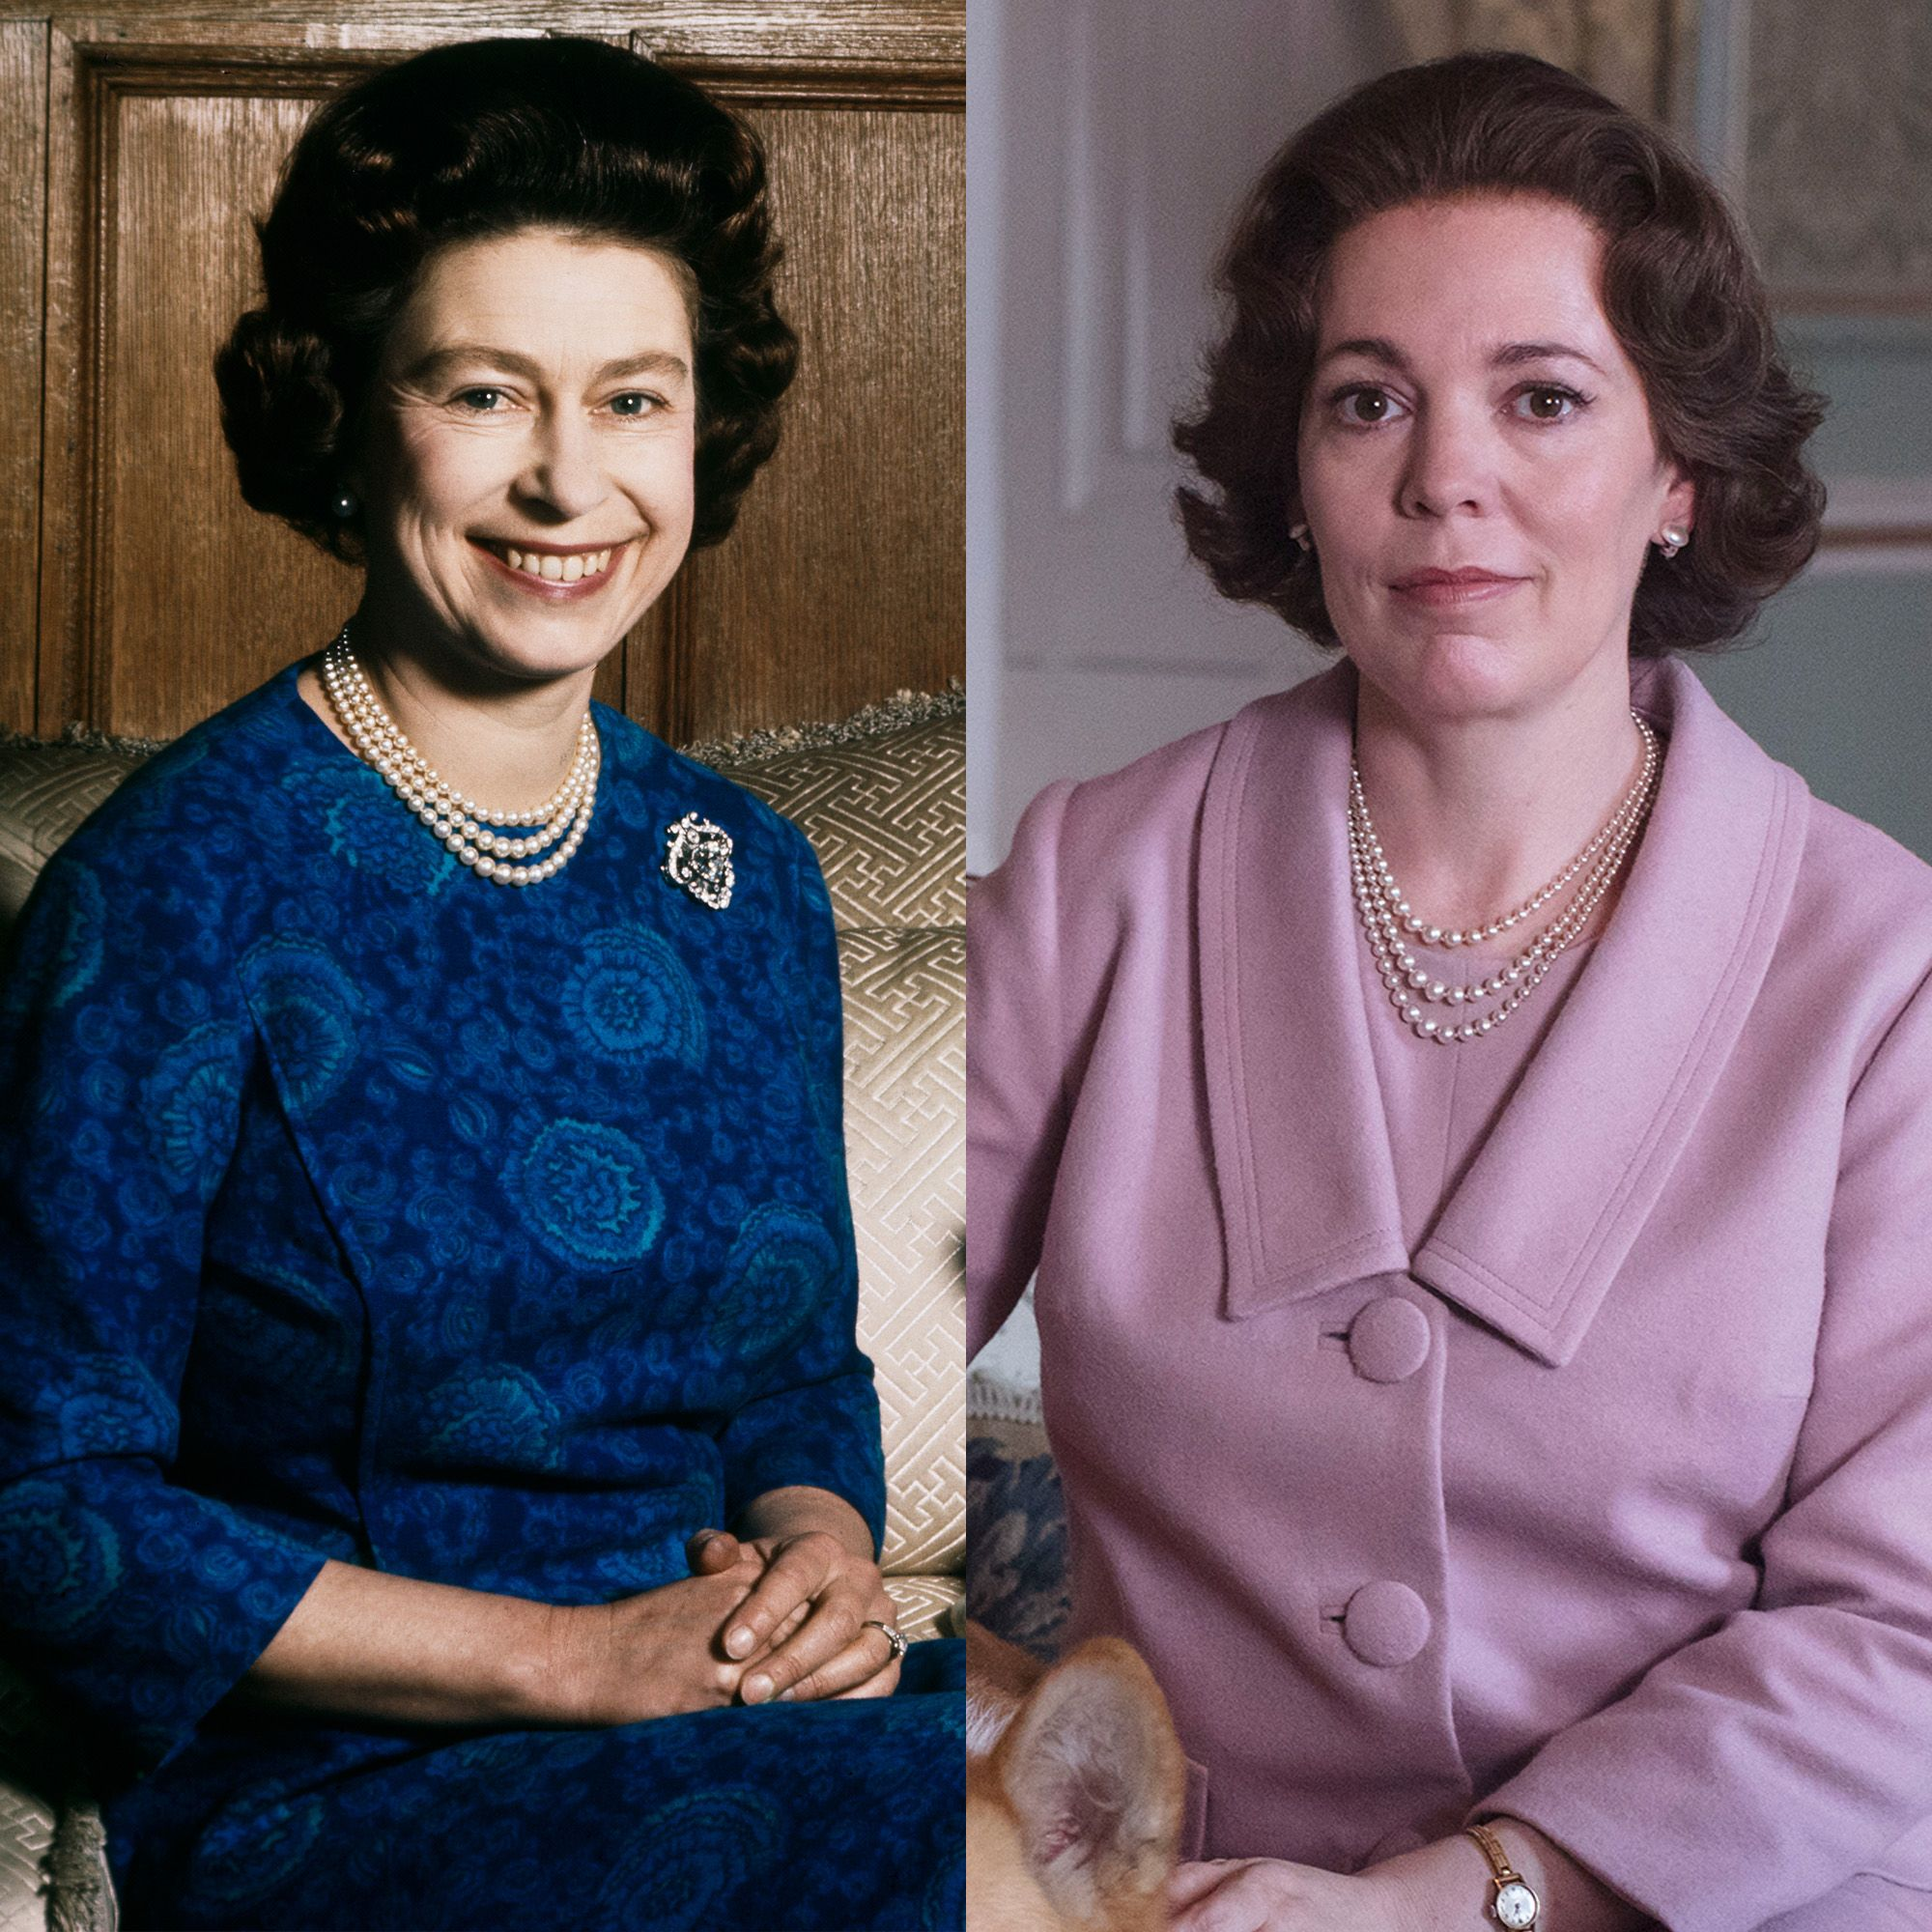 The Crown Season 3 Cast Photos Of The Actors And Real Royals